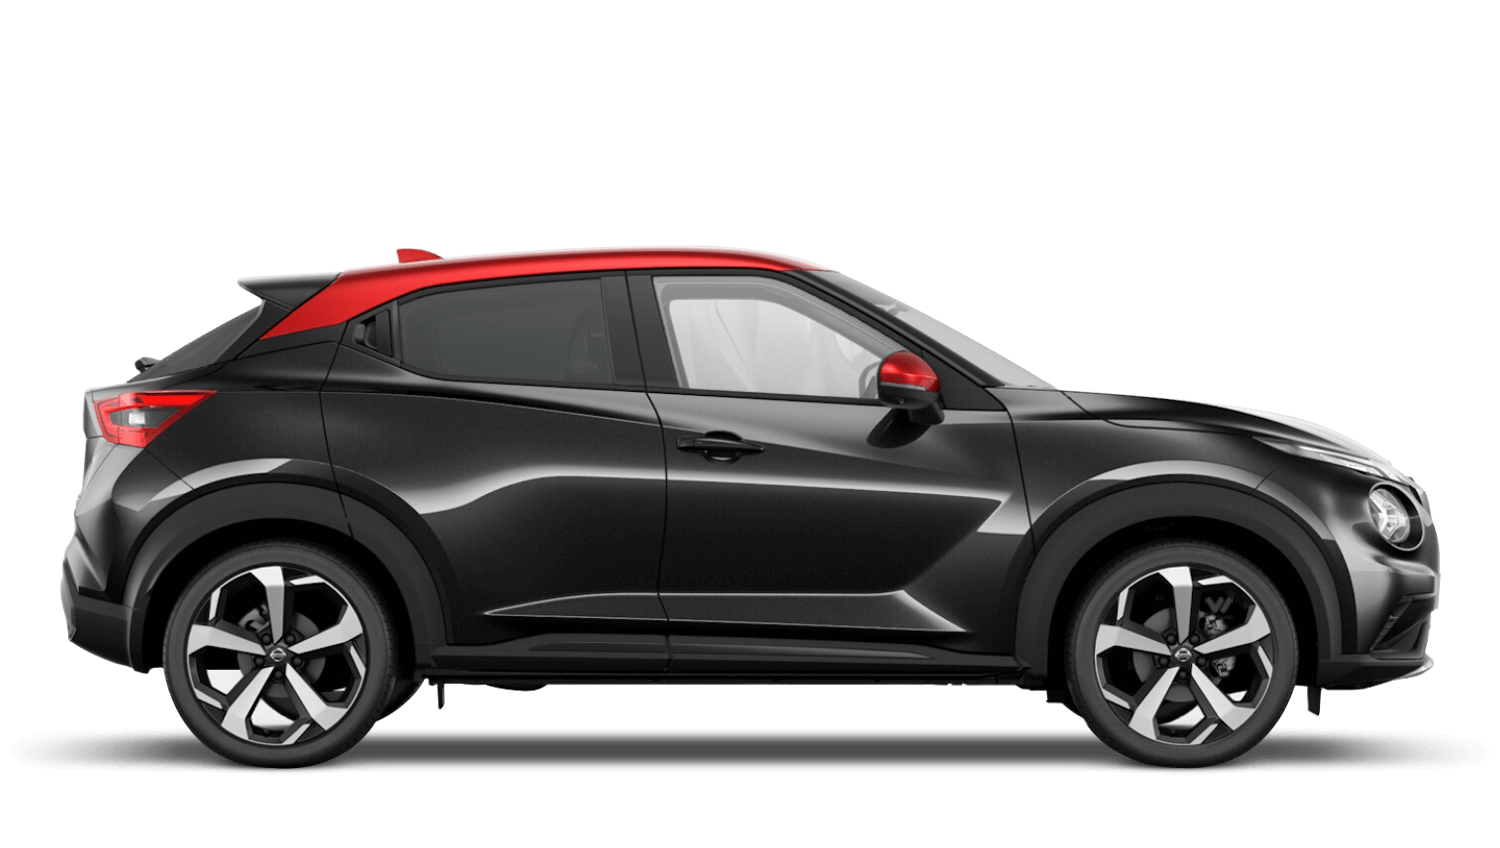 Pearl Black with Fuji Sunset Red Roof Next Generation Nissan Juke